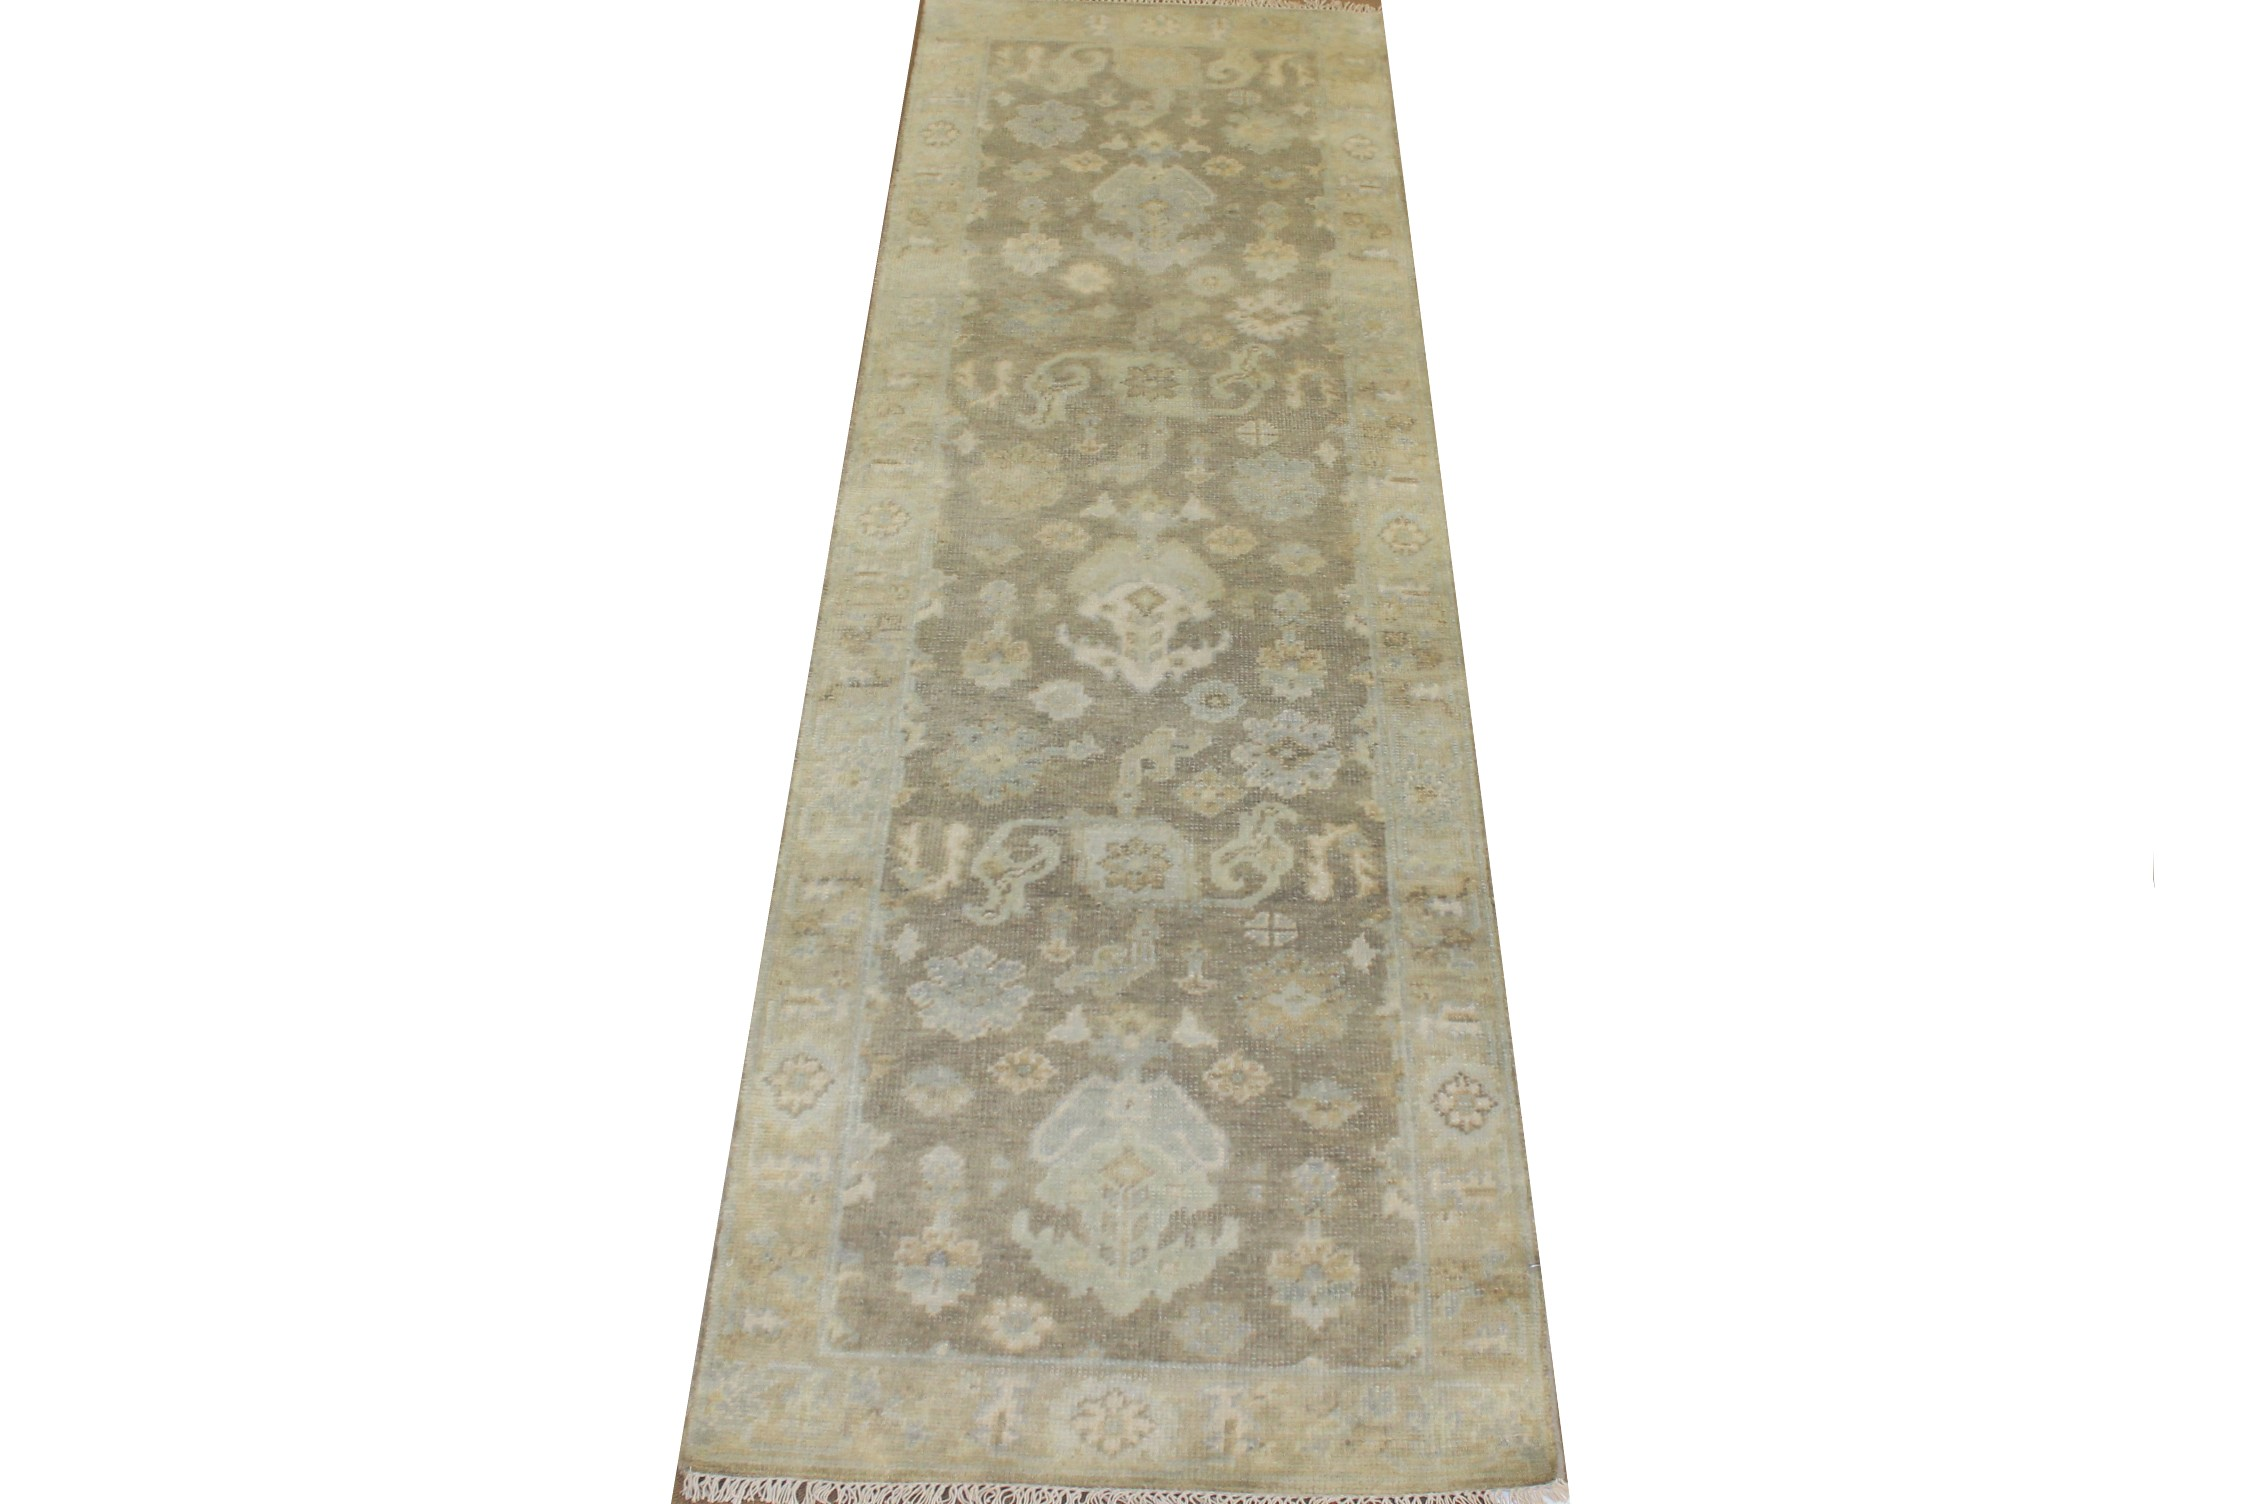 8 ft. Runner Oushak Hand Knotted Wool Area Rug - MR025151